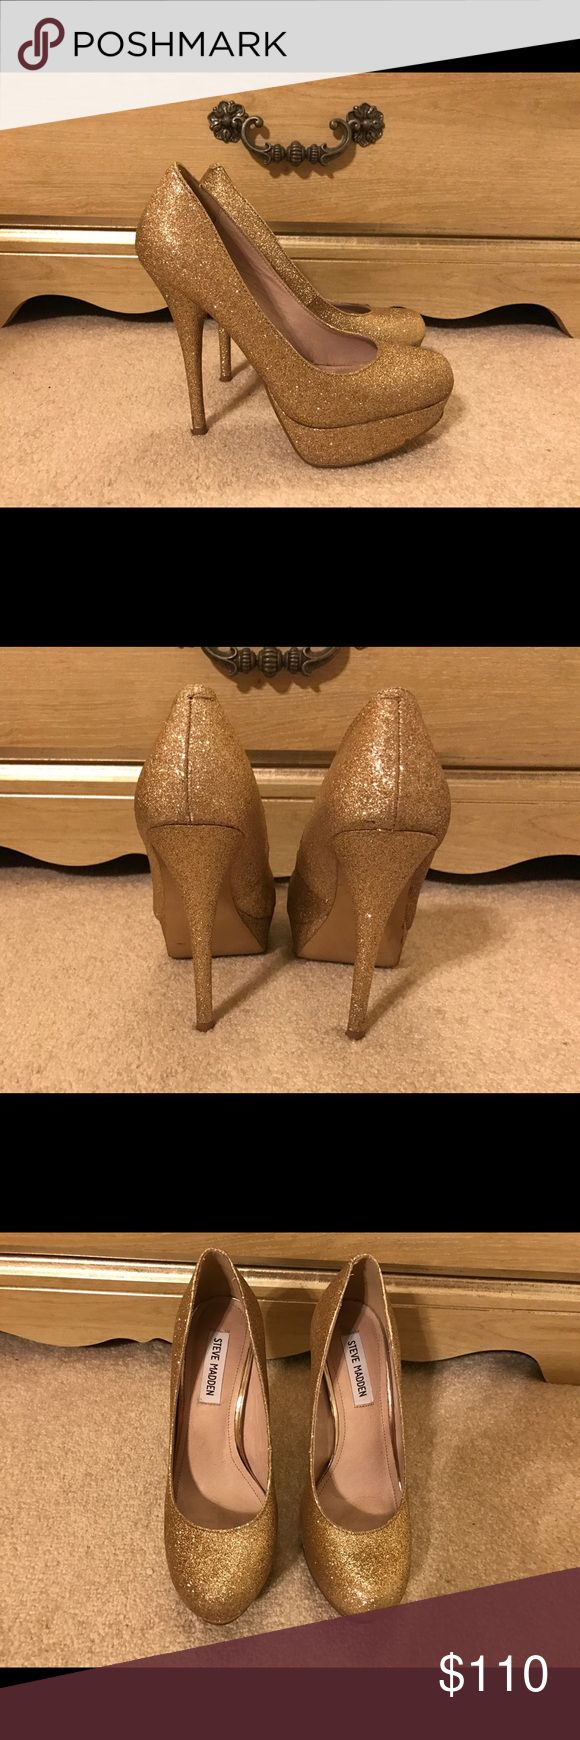 ✨BEAUTIFUL GLITTER GOLD STEVE MADDEN SHOES✨SALE‼️ ✨BEAUTIFUL GLITTER GOLD STEVE MADDEN SHOES✨ Perfect Condition ✨Size 8 1/2 ‼️‼️SALE‼️‼️‼️❤️❤️❤️ Steve Madden Shoes Heels